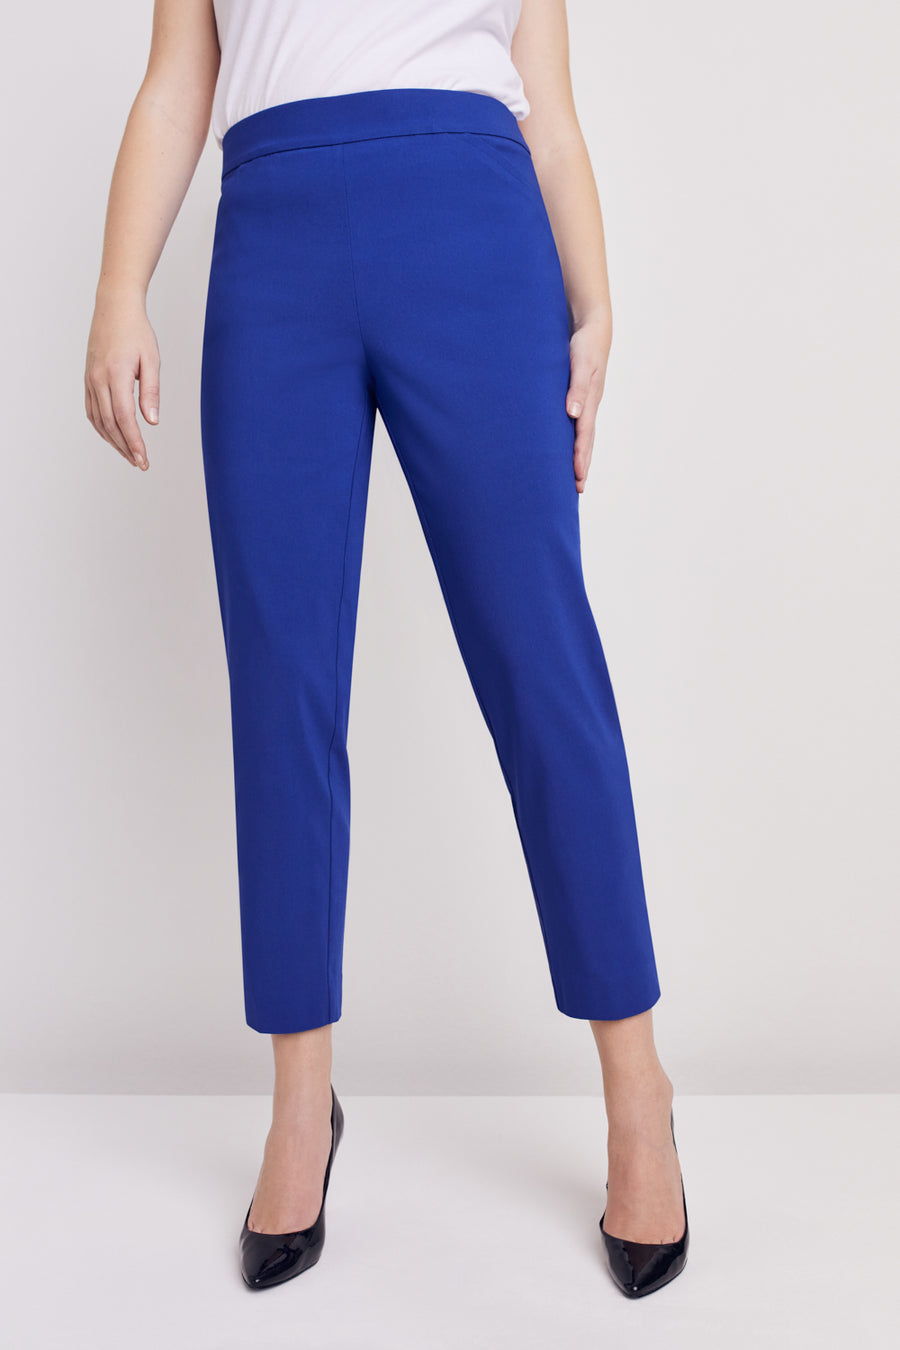 Petite  Super Stretch Tummy Control Pant with Cat Eye Pockets and Ankle Slits - Petite Marine Blue